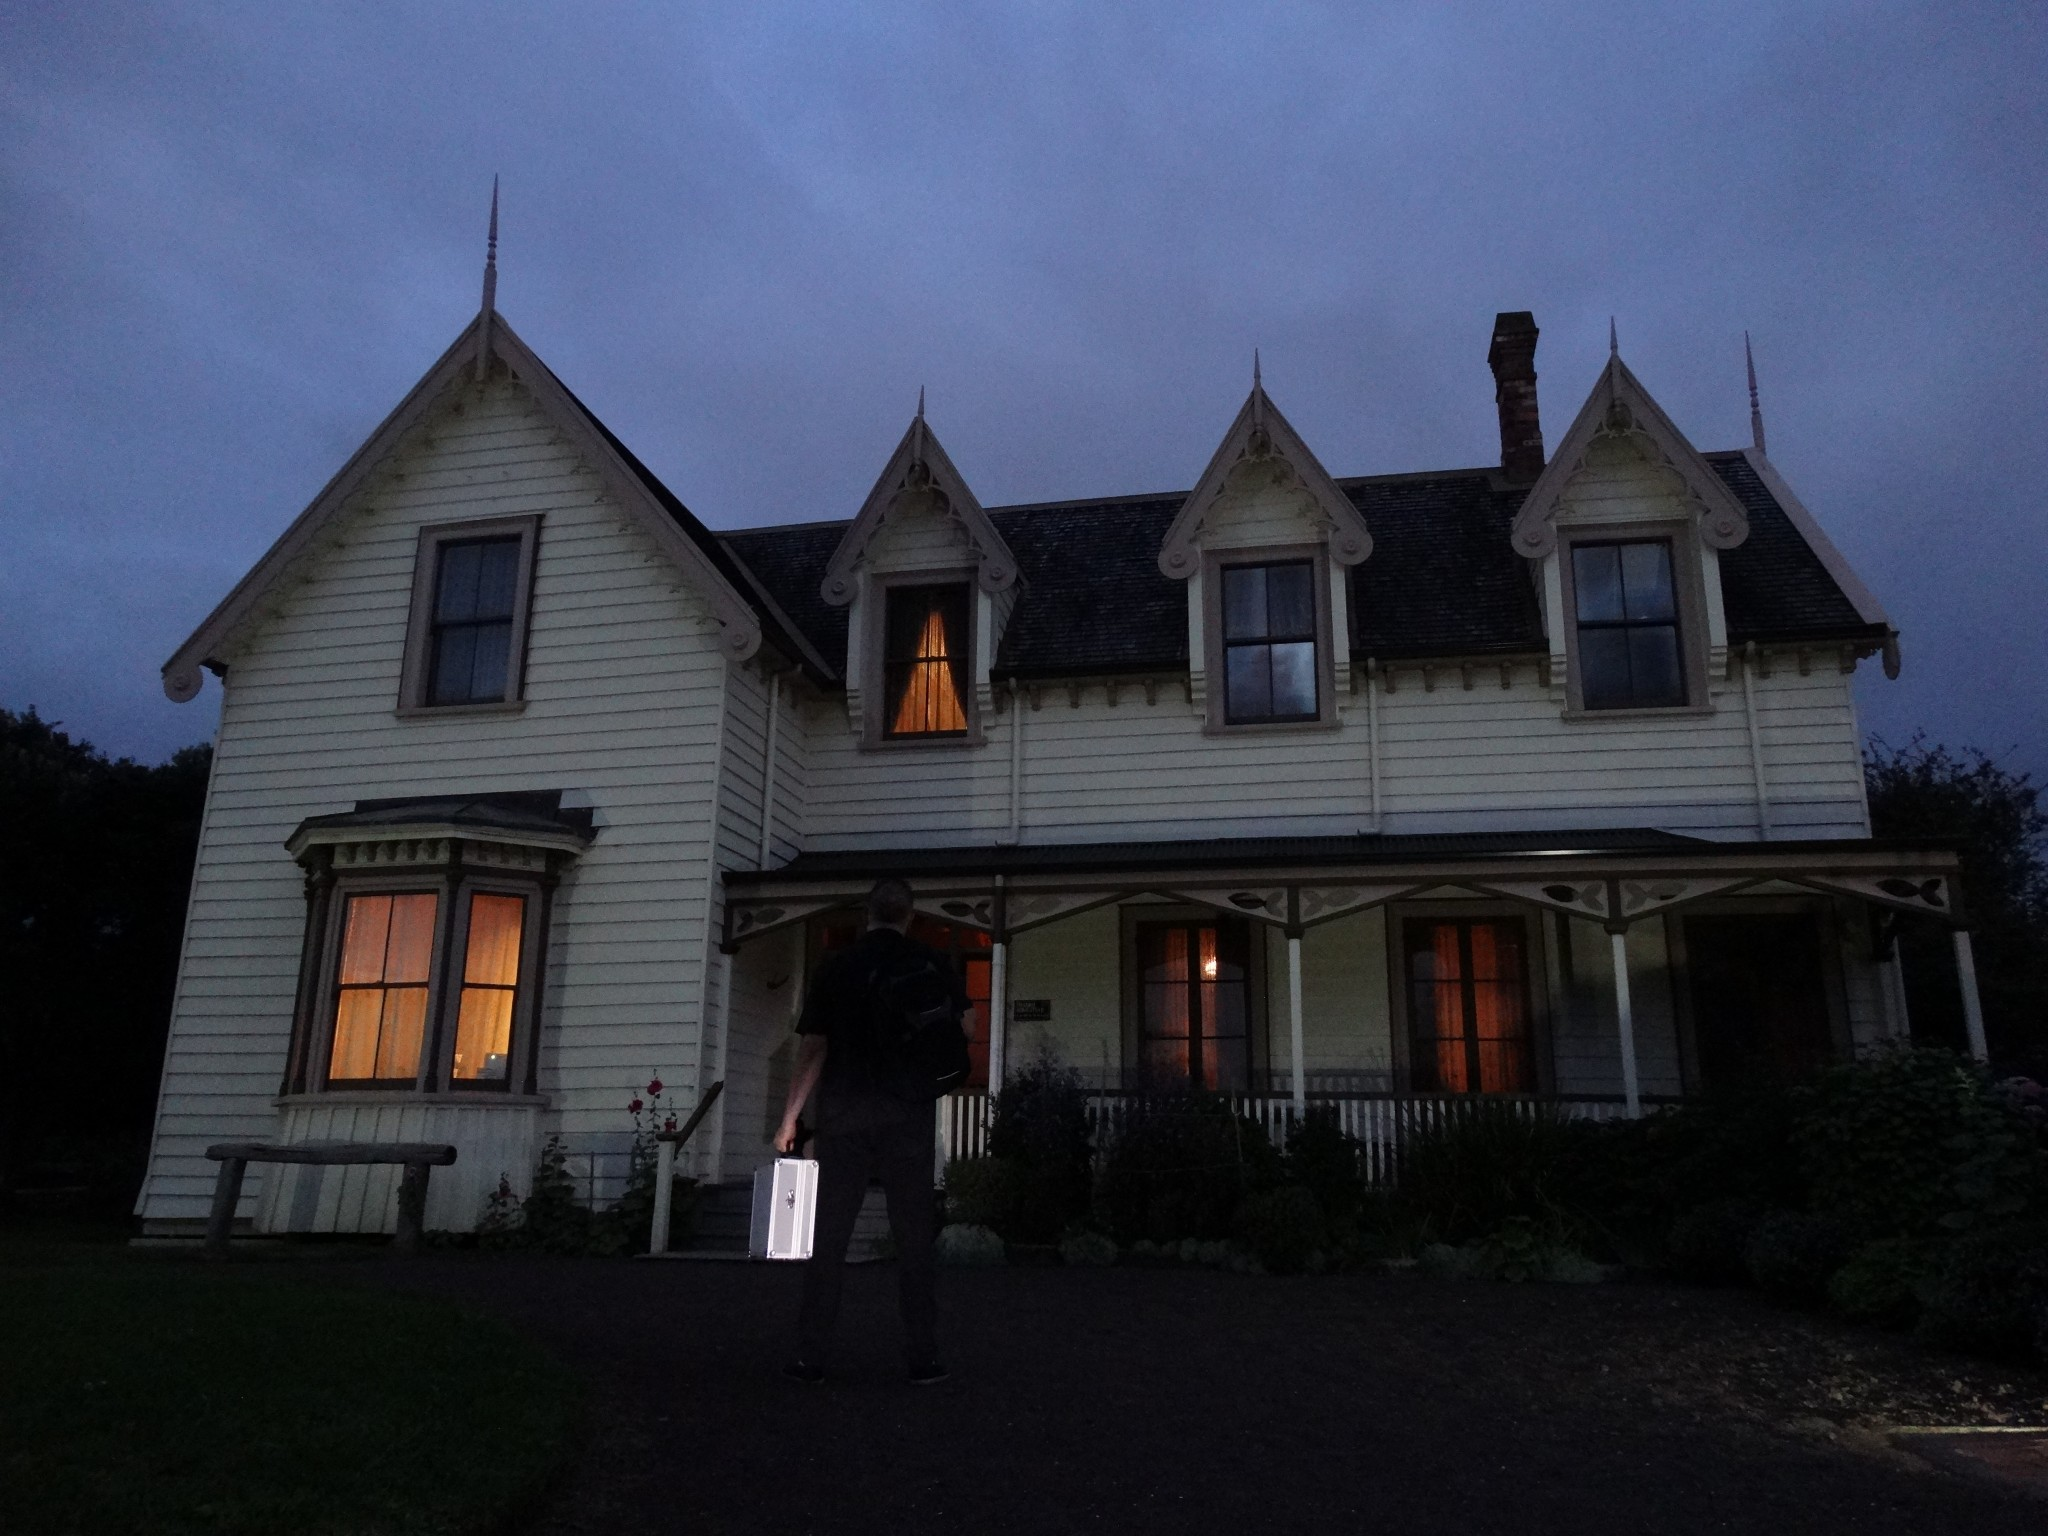 Project Puhinui: Session one – Puhinui House, Howick Historical Village